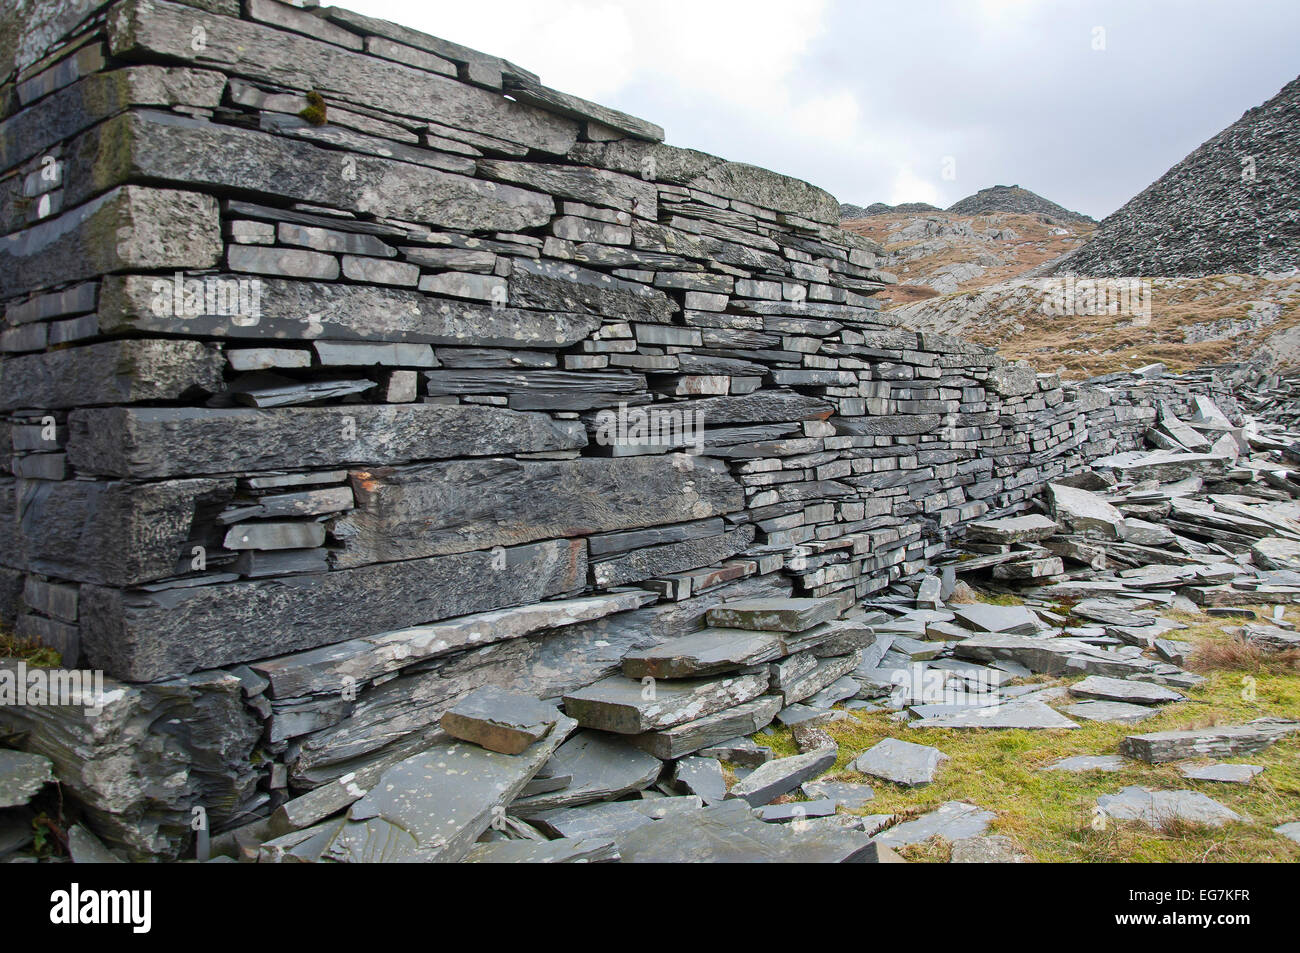 Snowdonia National Park, Gwynedd, Wales, UK. 17th February, 2015. A very precise wall is seen at the abandoned Rhosydd Stock Photo